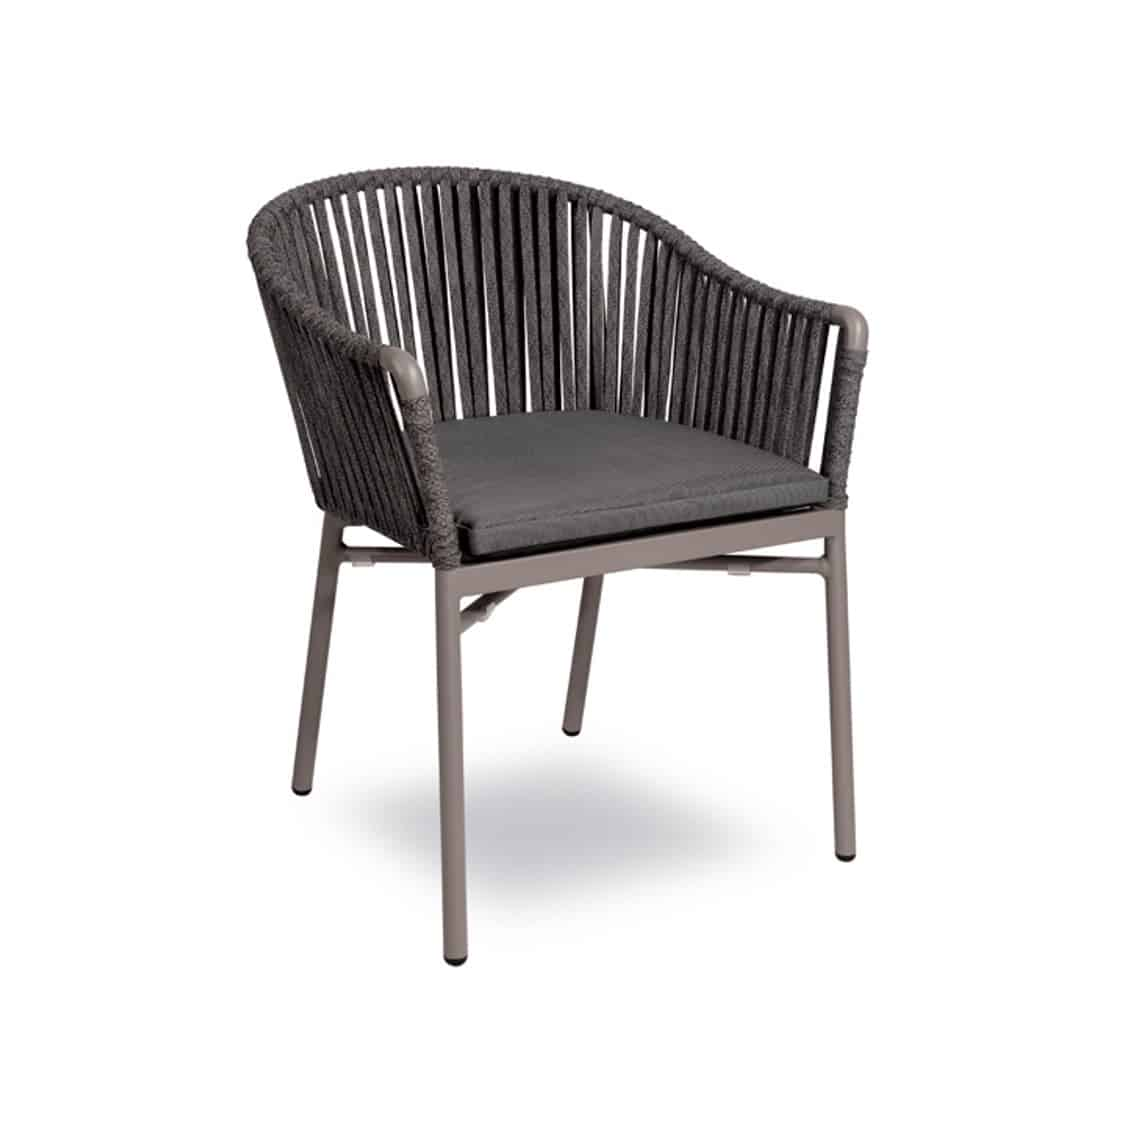 Karina roped back outdoor chairs available from DeFrae Contract Furniture Grey